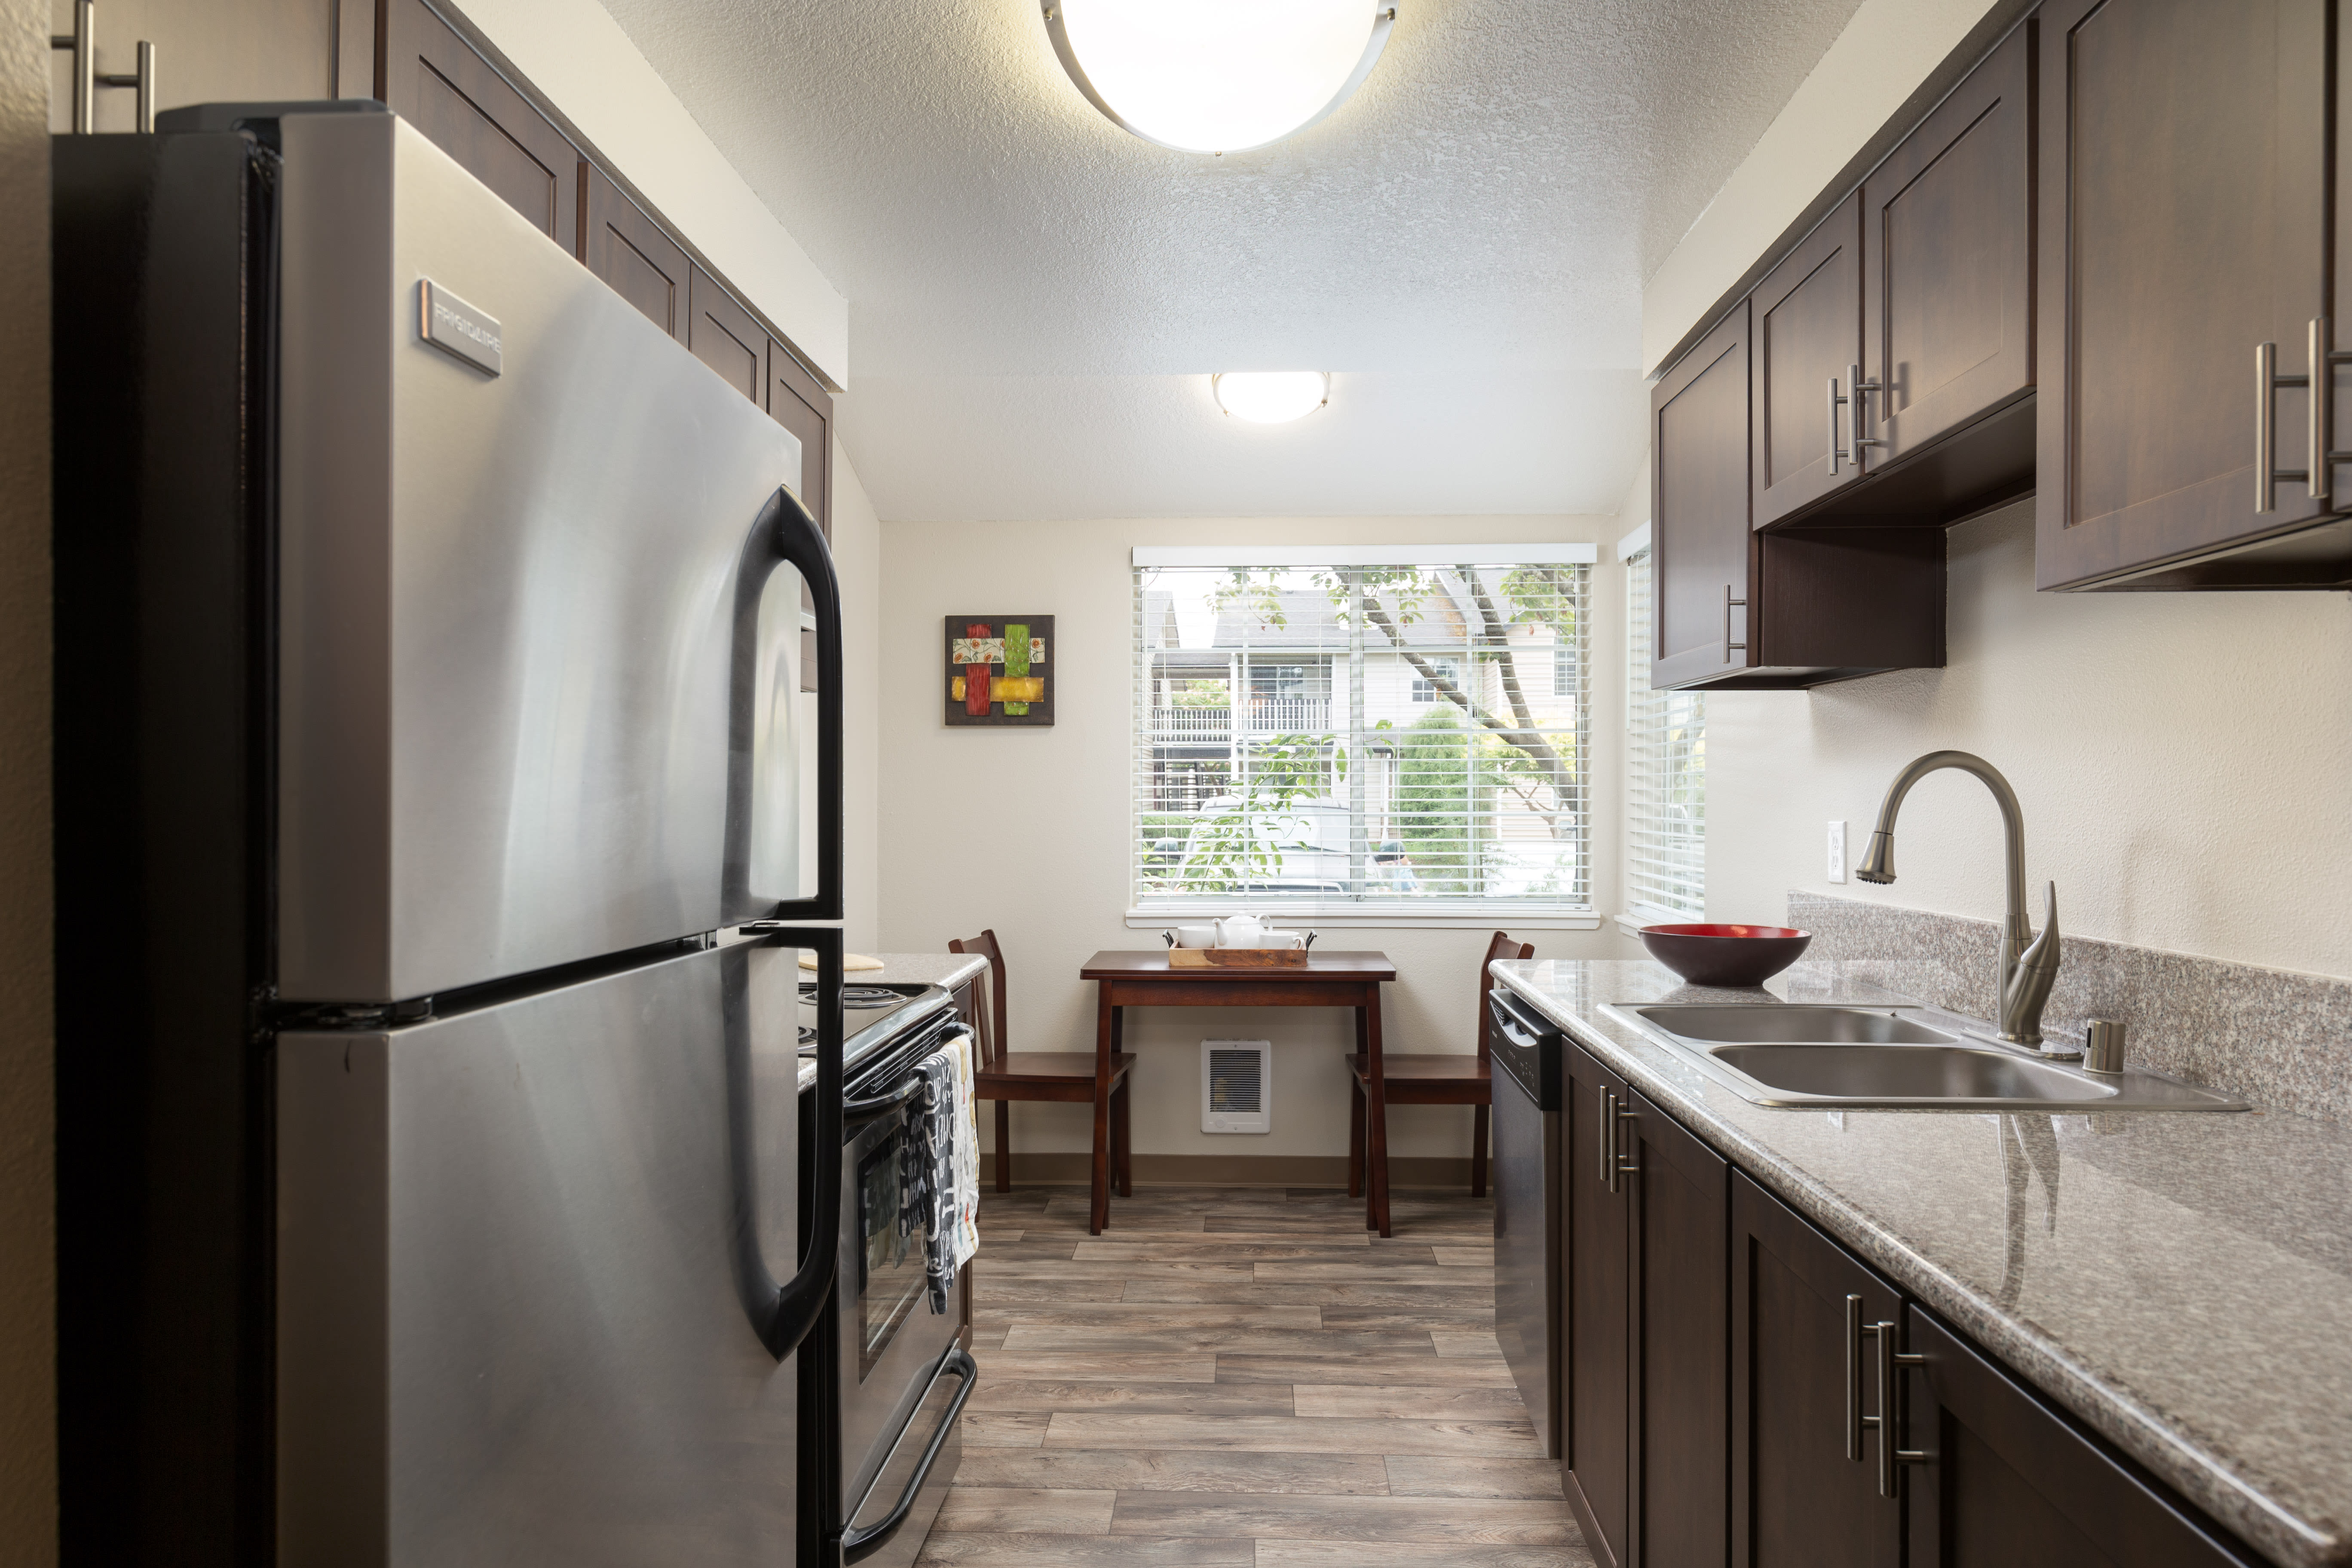 Kitchen at Walnut Grove Landing Apartments in Vancouver, WA